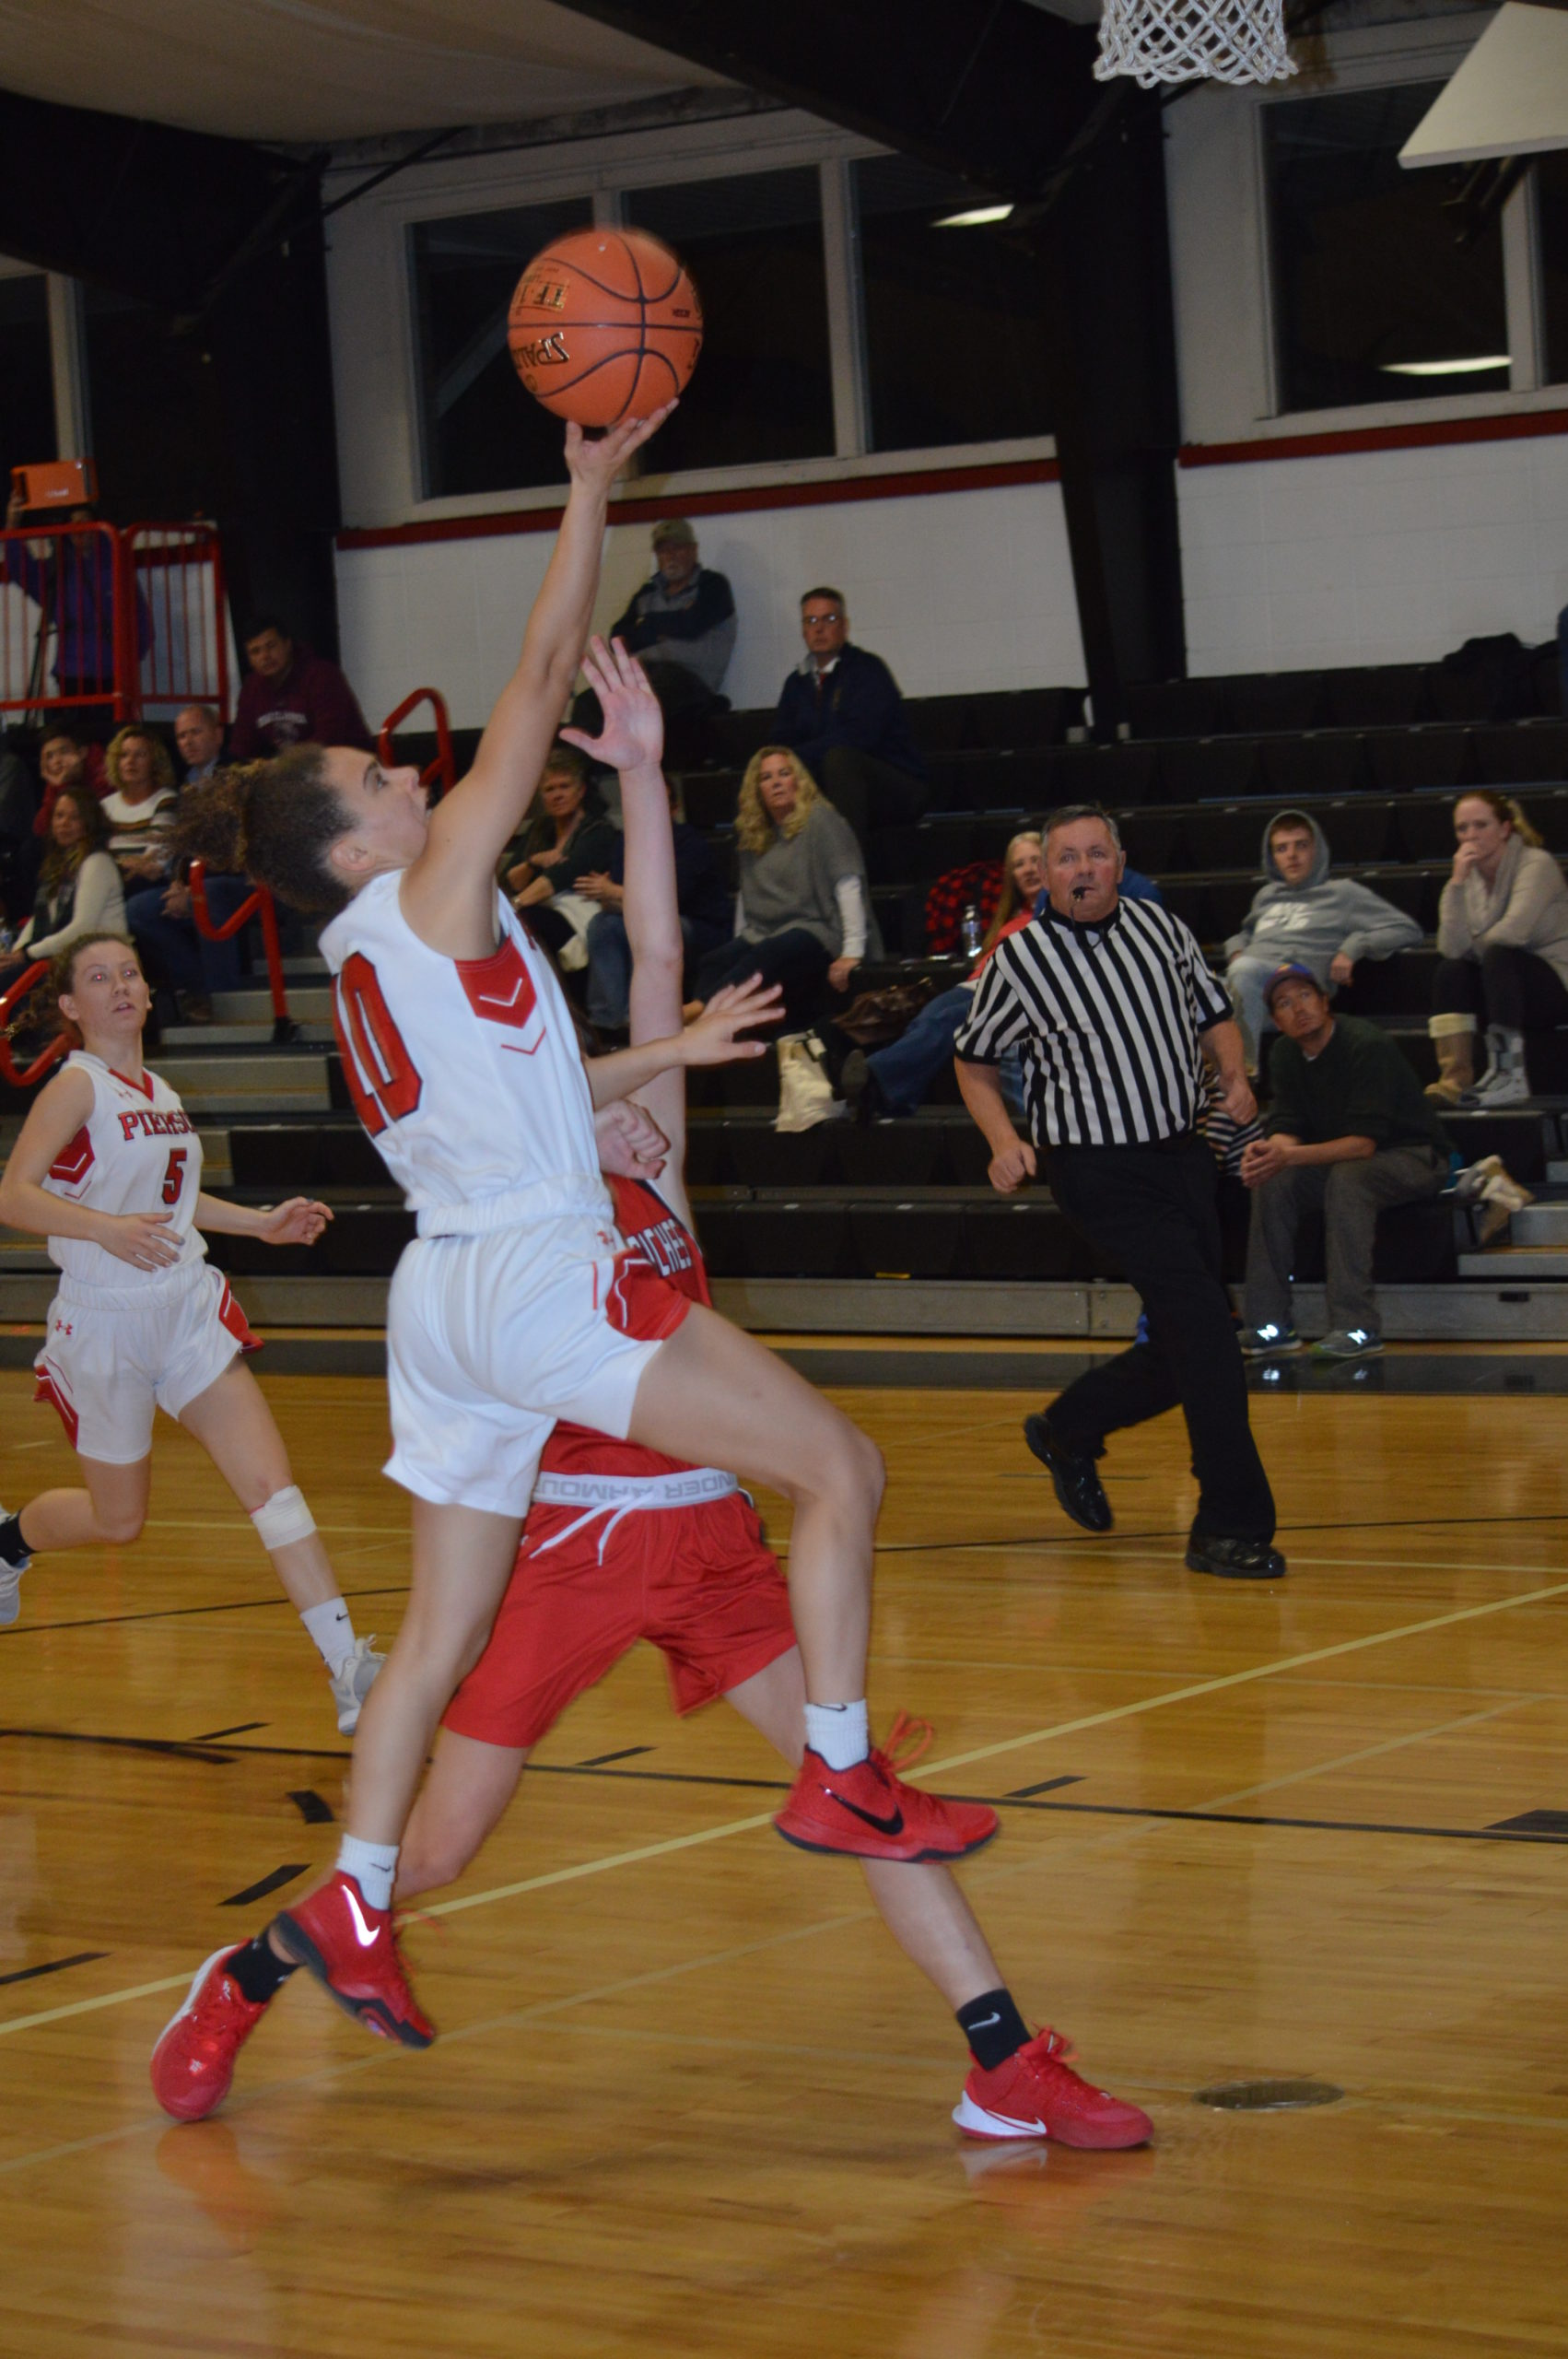 Pierson's Chastin Giles led all scorers with 21 points in the Lady Whalers' win over Center Moriches on Friday.